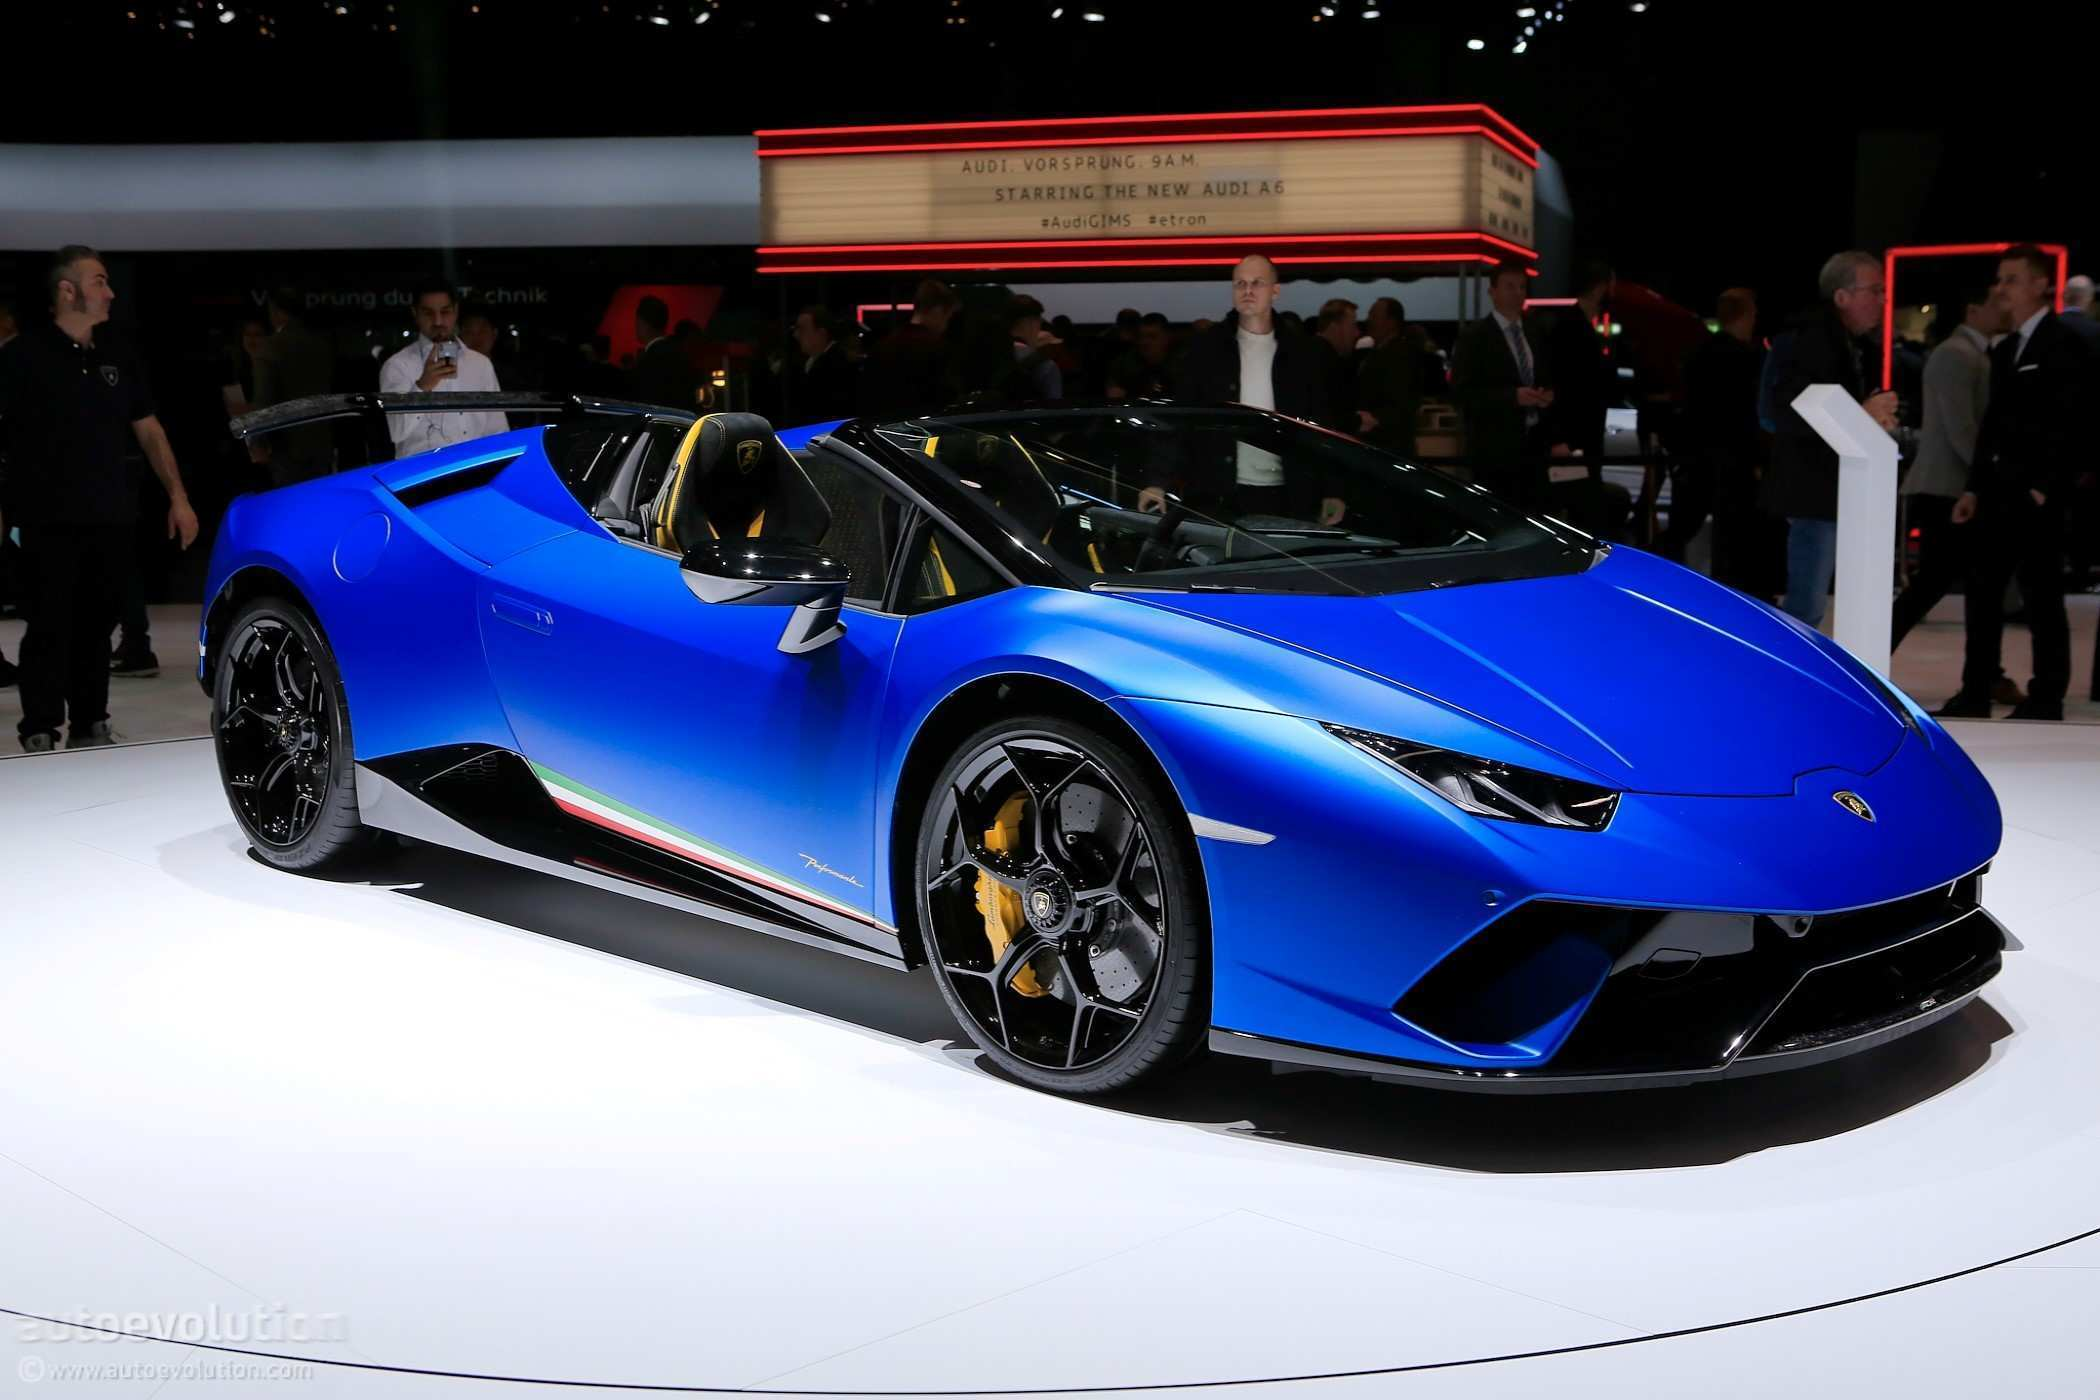 44 Great 2019 Lamborghini Spyder Prices for 2019 Lamborghini Spyder